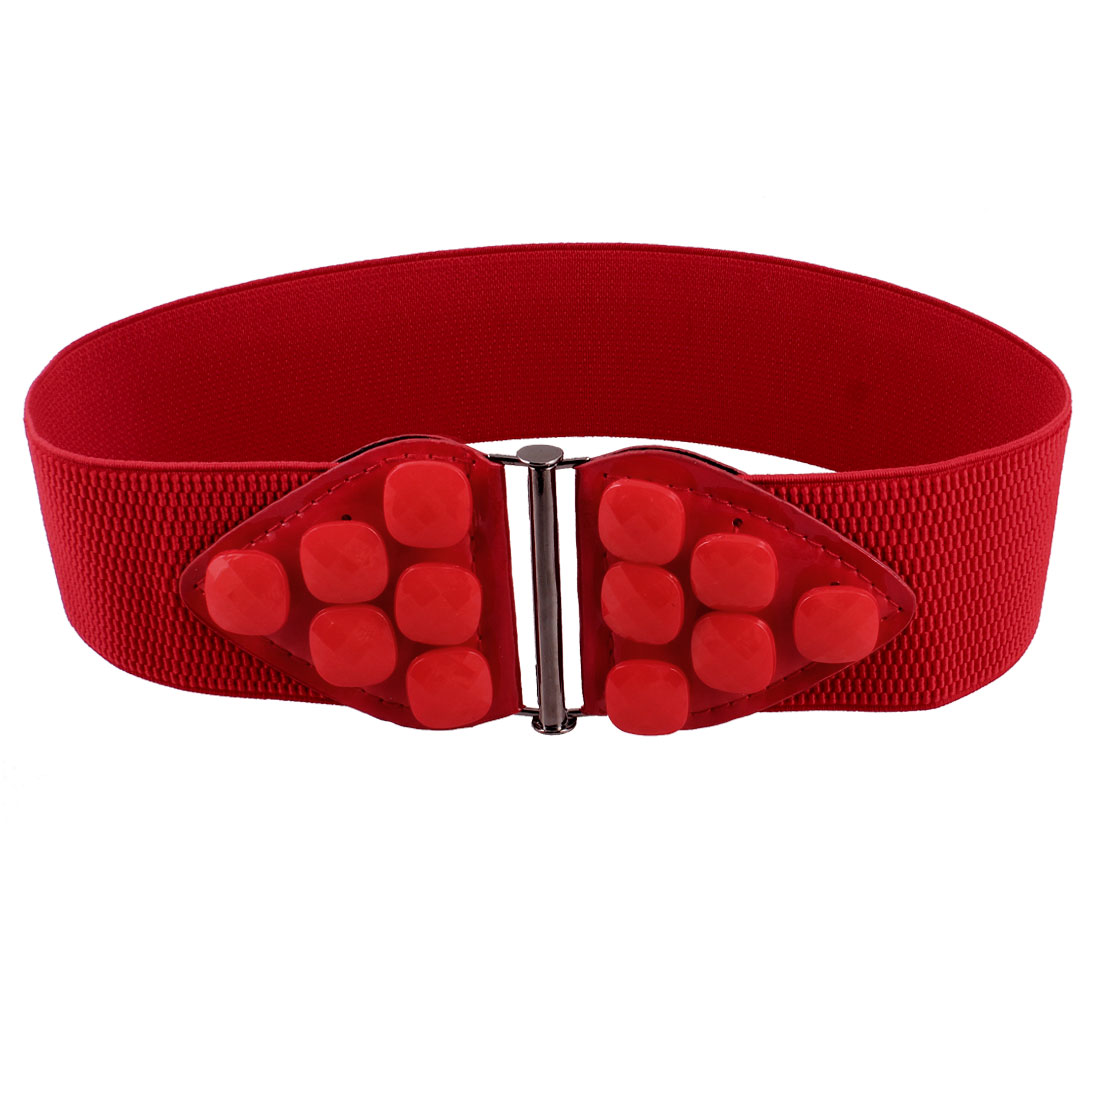 Women Interlocking Buckle Beads Accent Elastic Waist Belt Waistband Corset Band Red